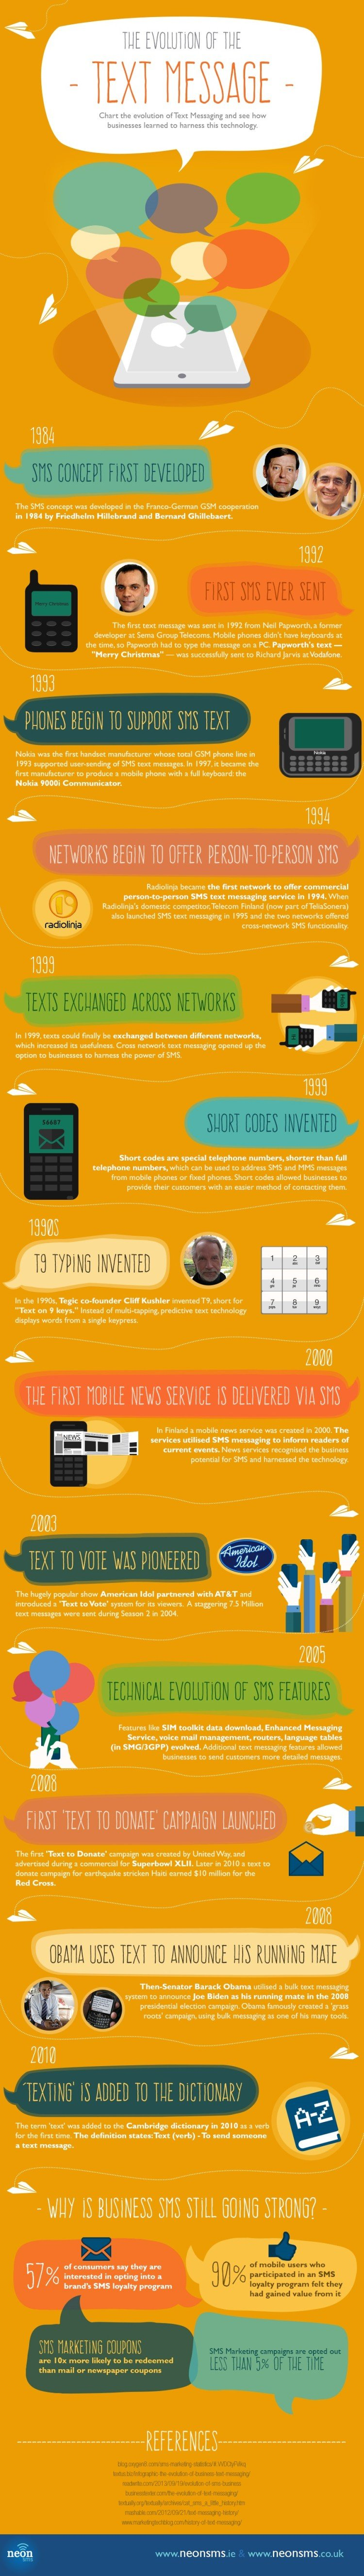 The Evolution of the Text Message [Infographic]